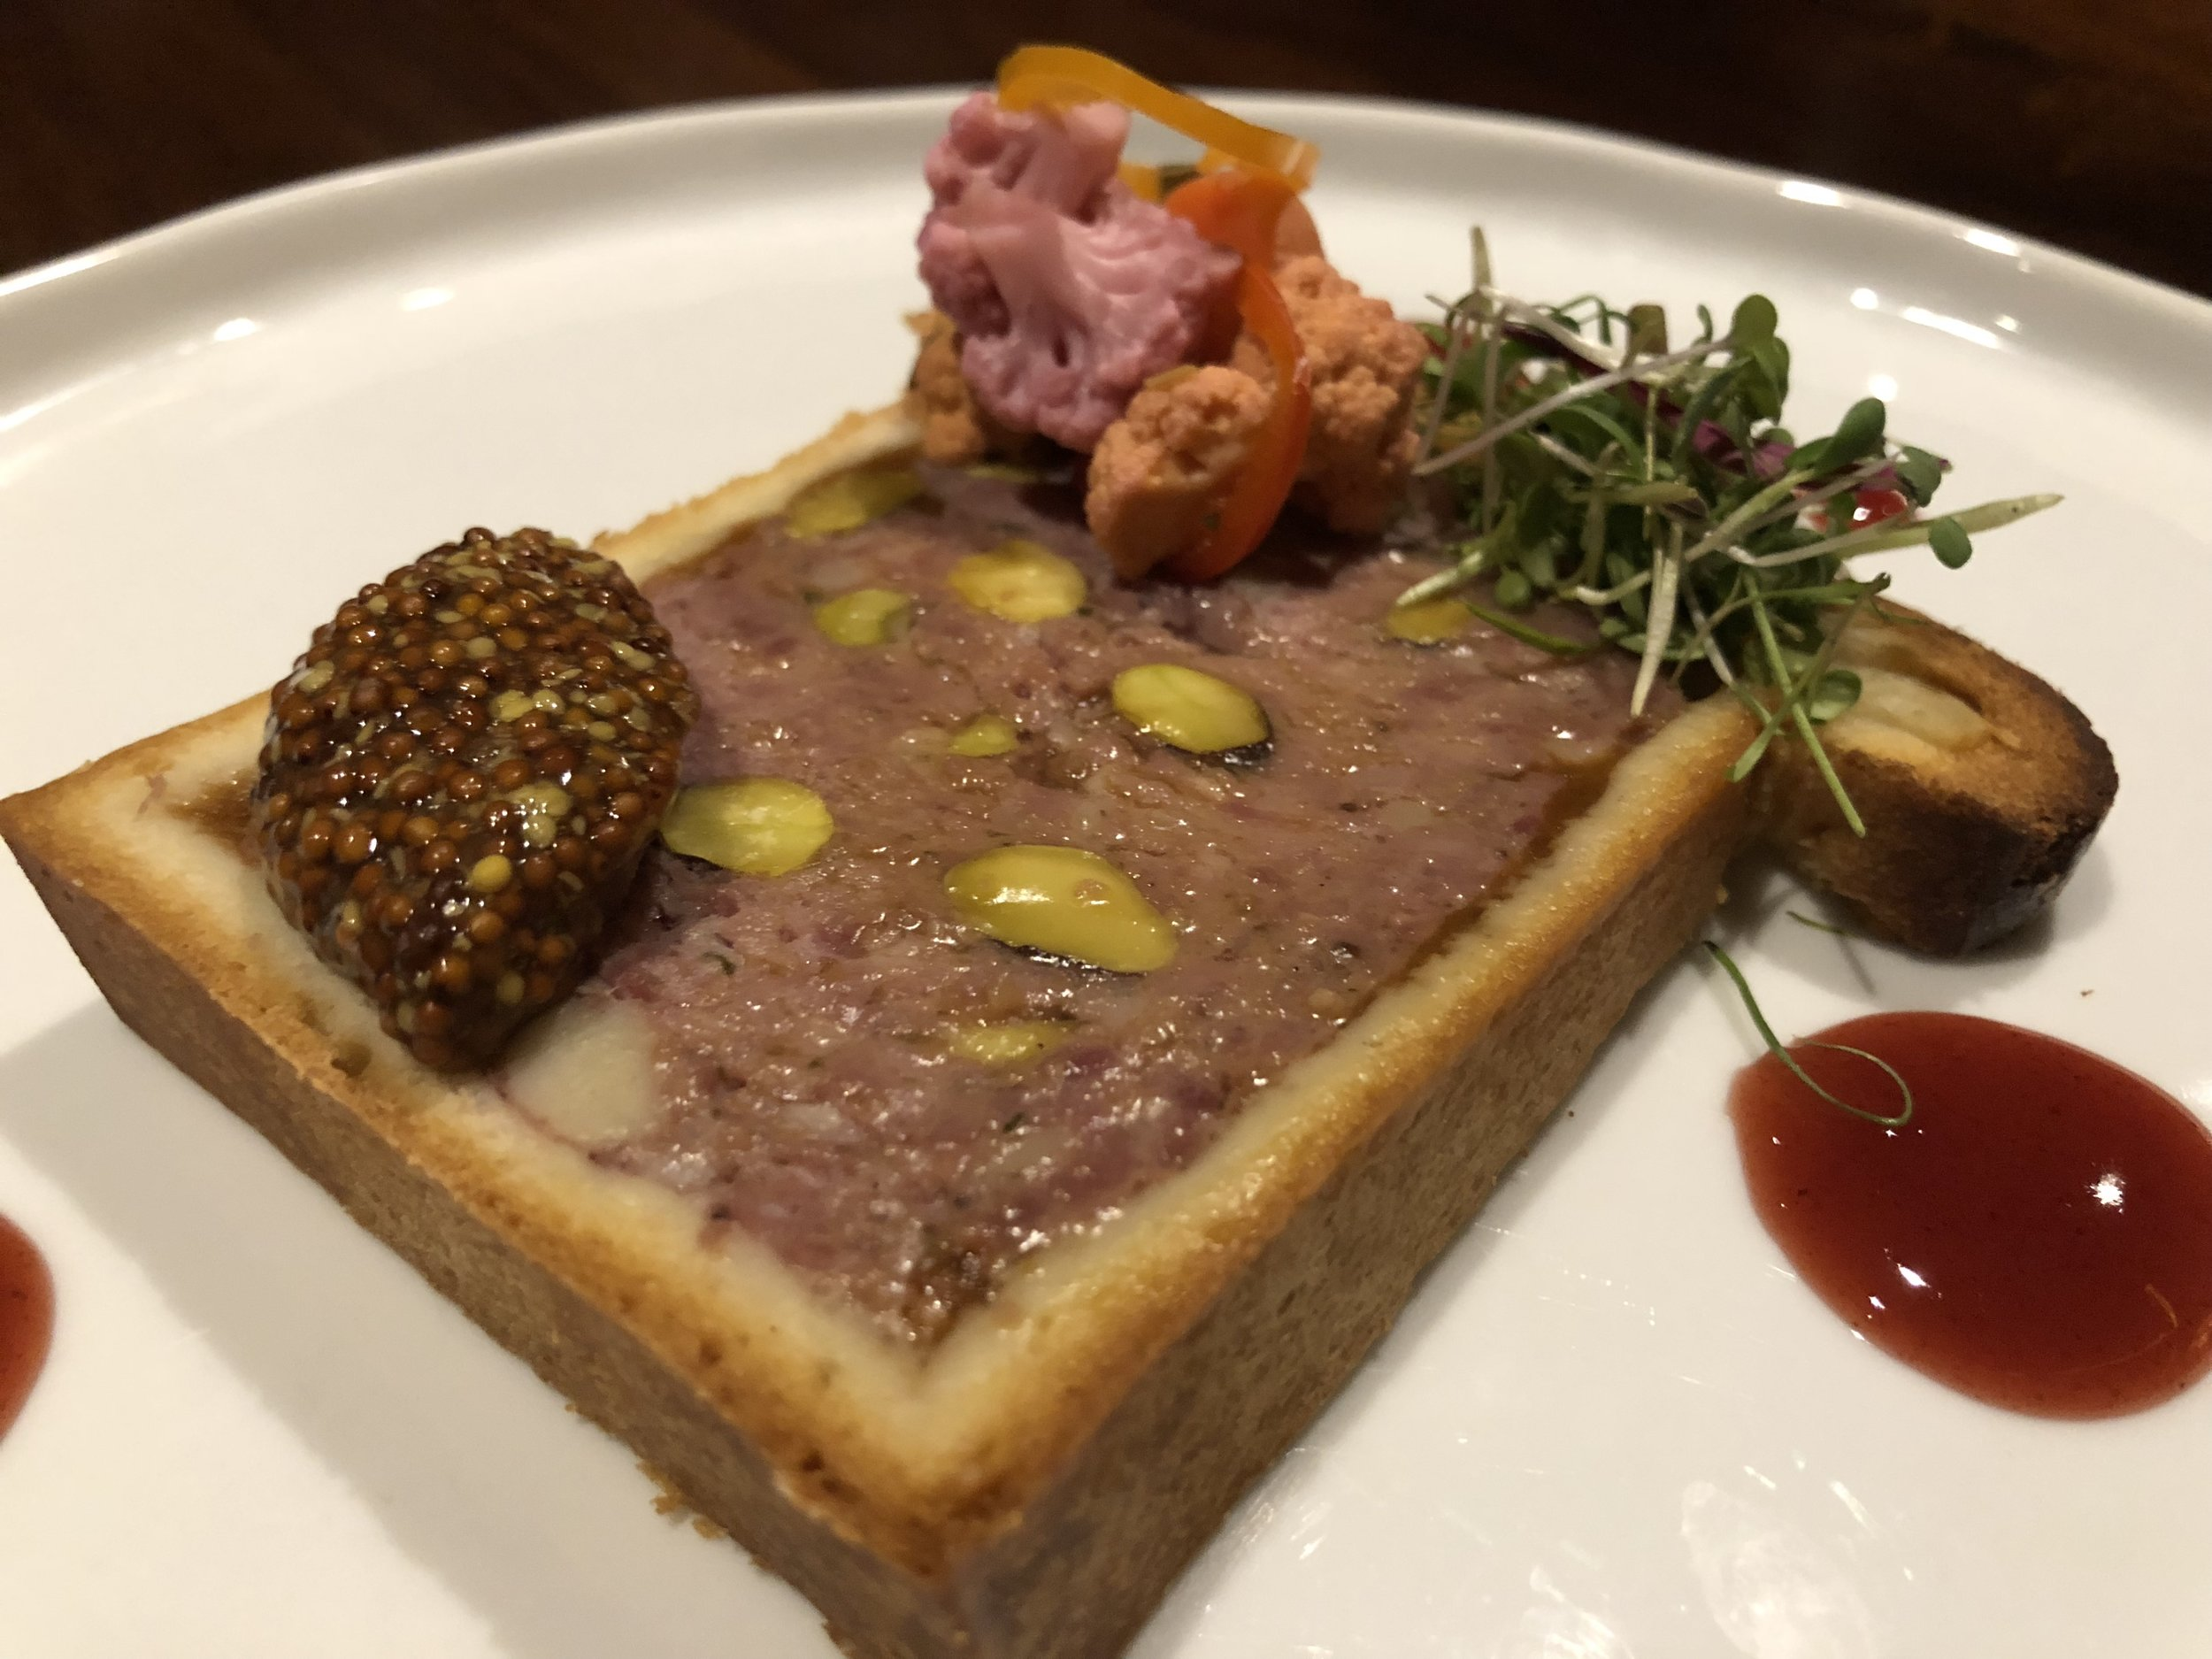 Pate en croute - moulard duck, pork, smoked duck ham, pistachio, savory pastry dough, pickled vegetables, dijon mustard, cumberland sauce